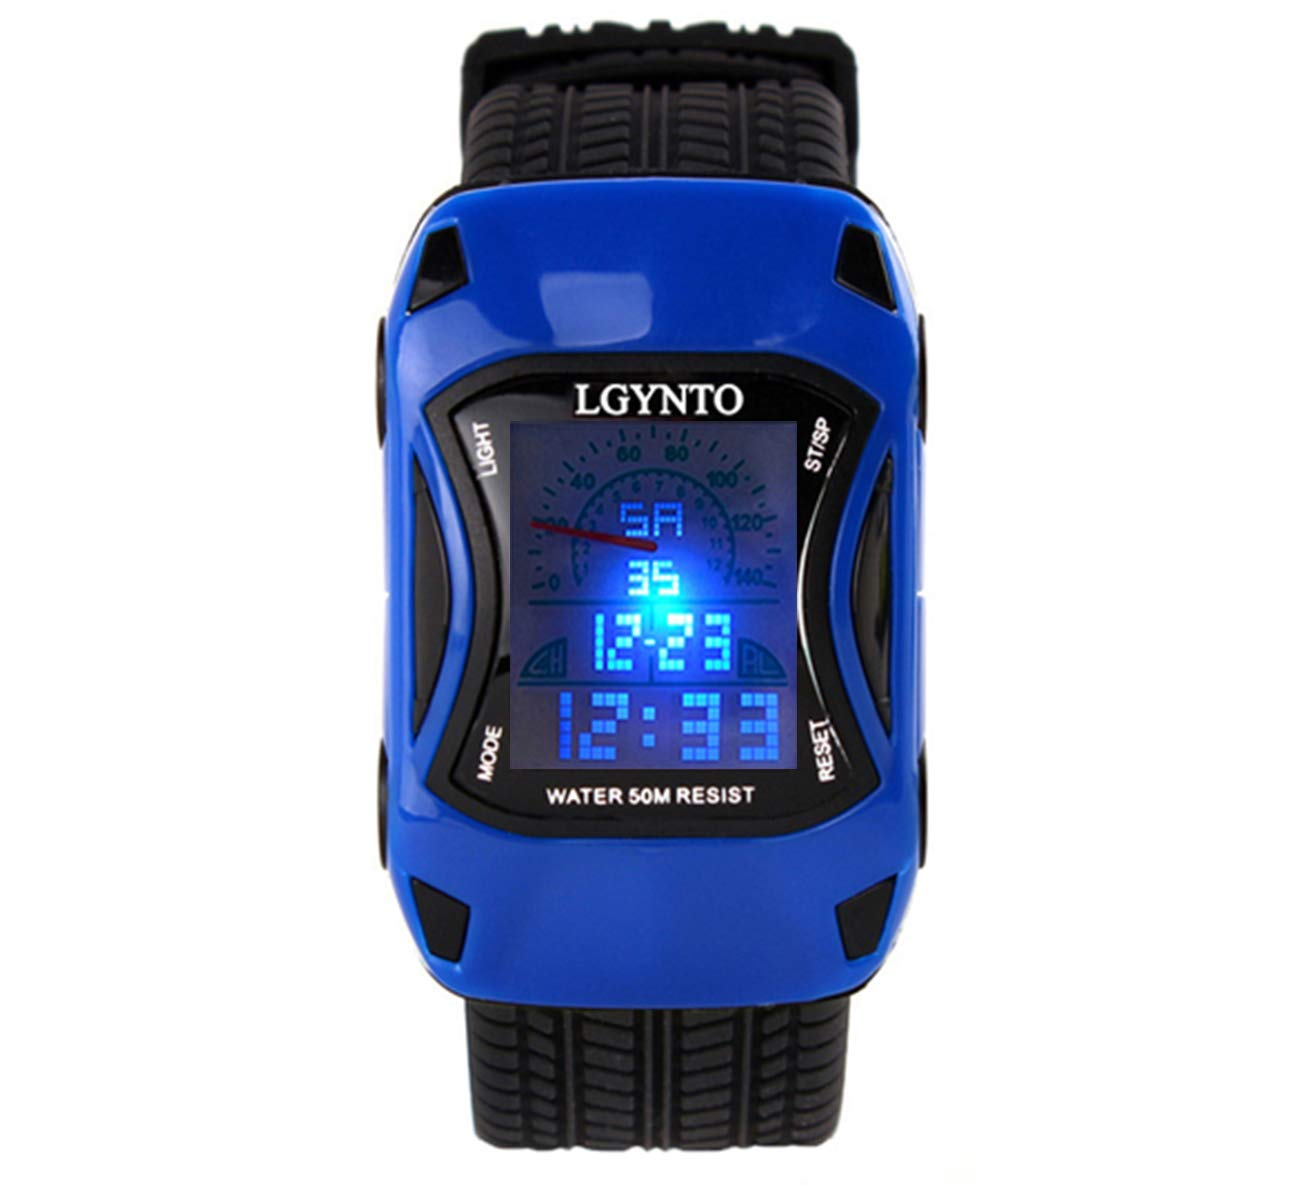 LGYNTO Kids Watches Boys Girls Waterproof Sports Digital LED Wristwatches 7 Colors Flashing Car Shape Wrist Watches for Children (2 Pack) - Blue by LGYNTO